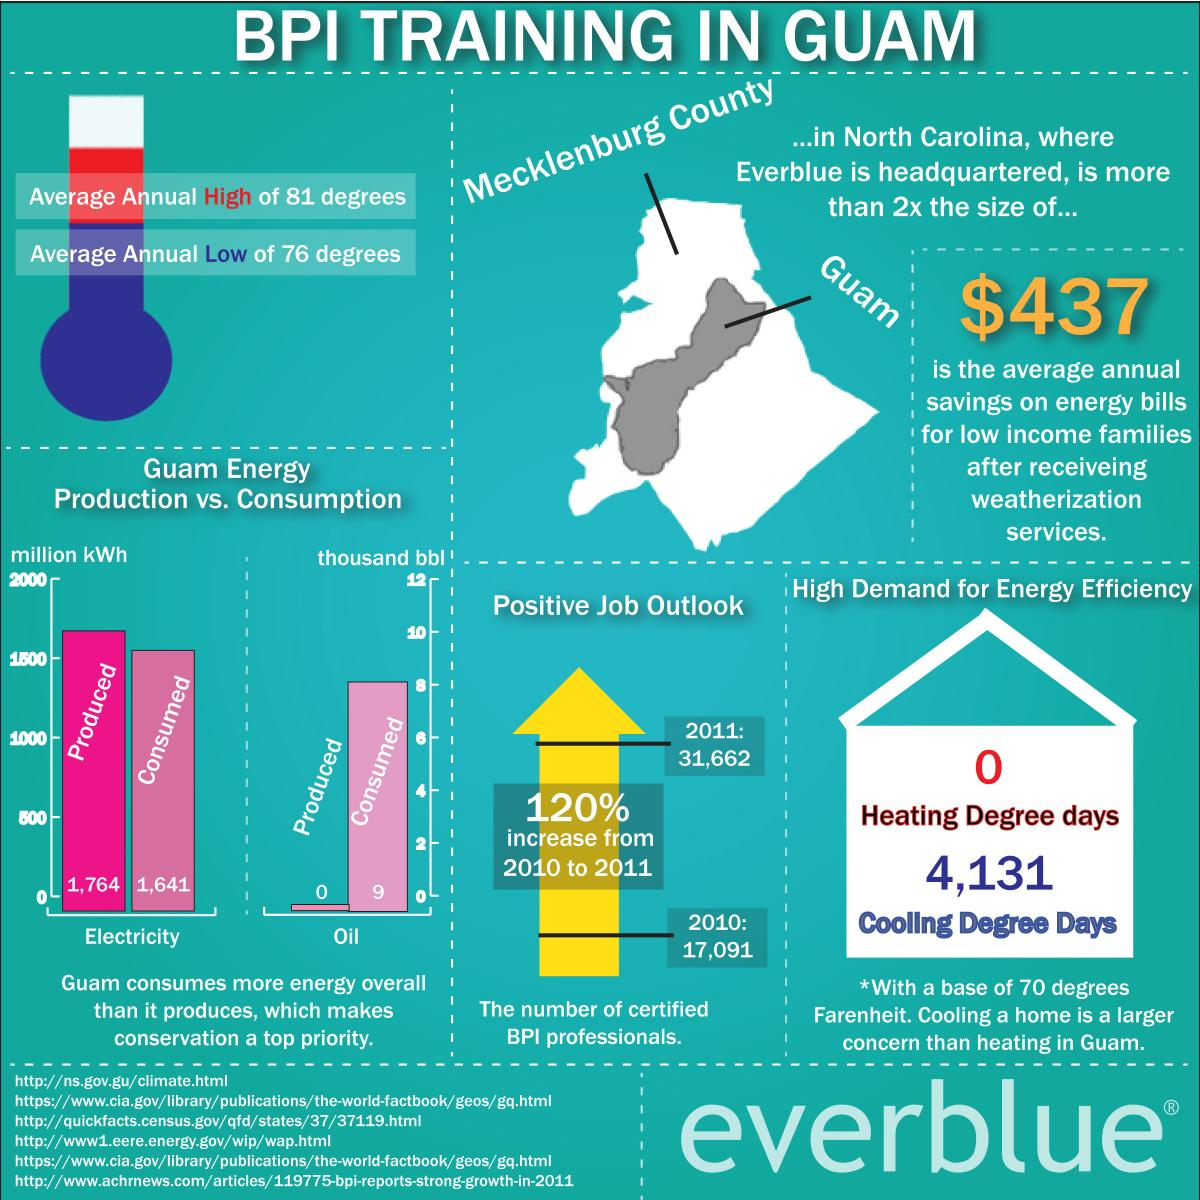 BPI Training in Guam Statistics and Facts